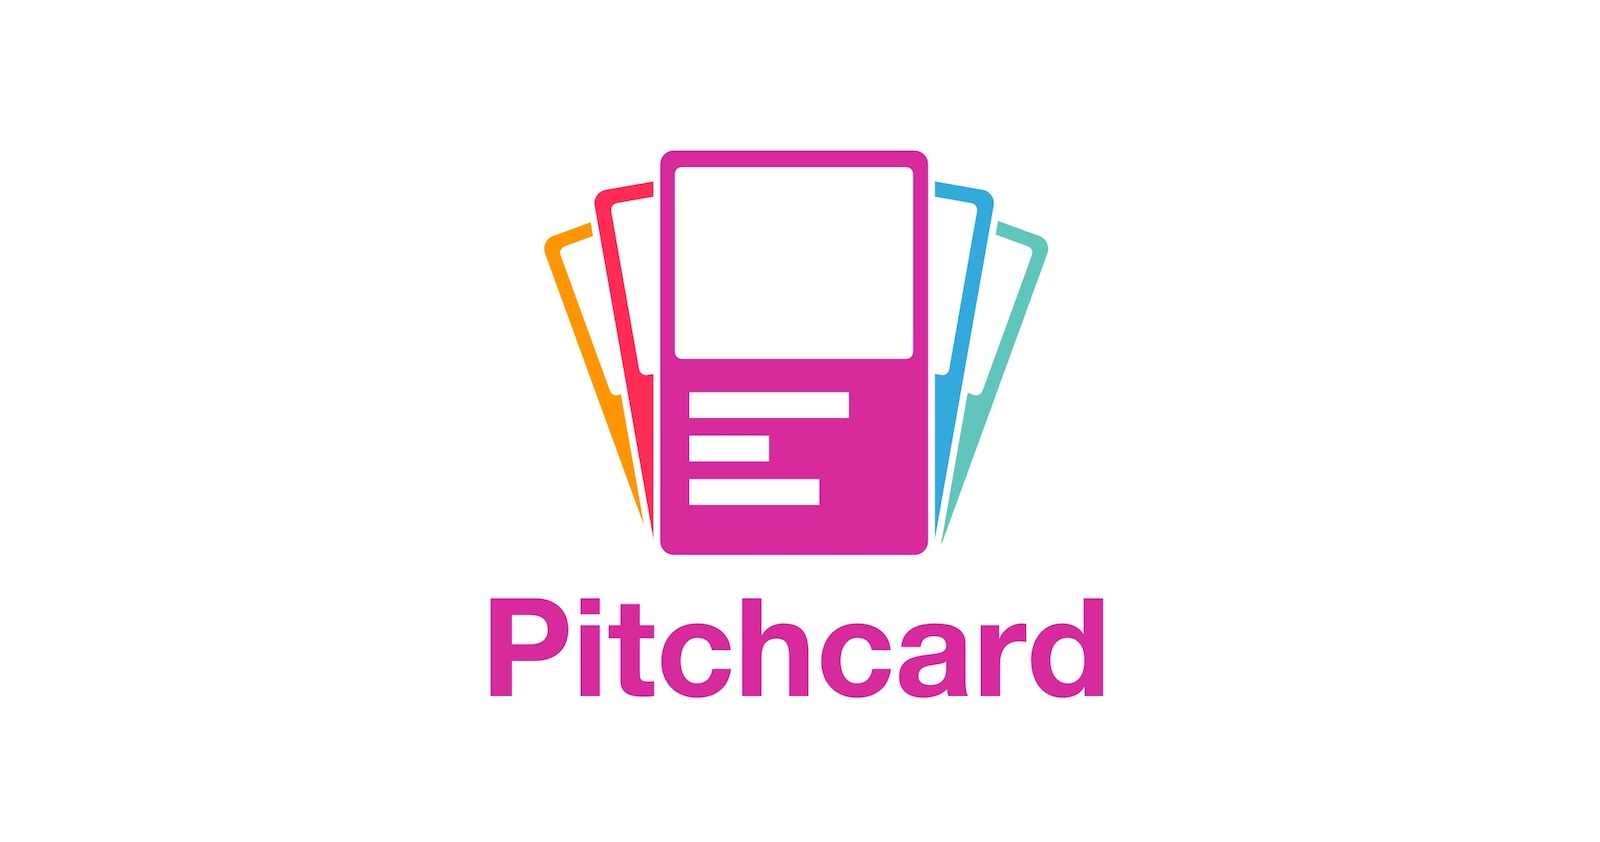 Pitchcard